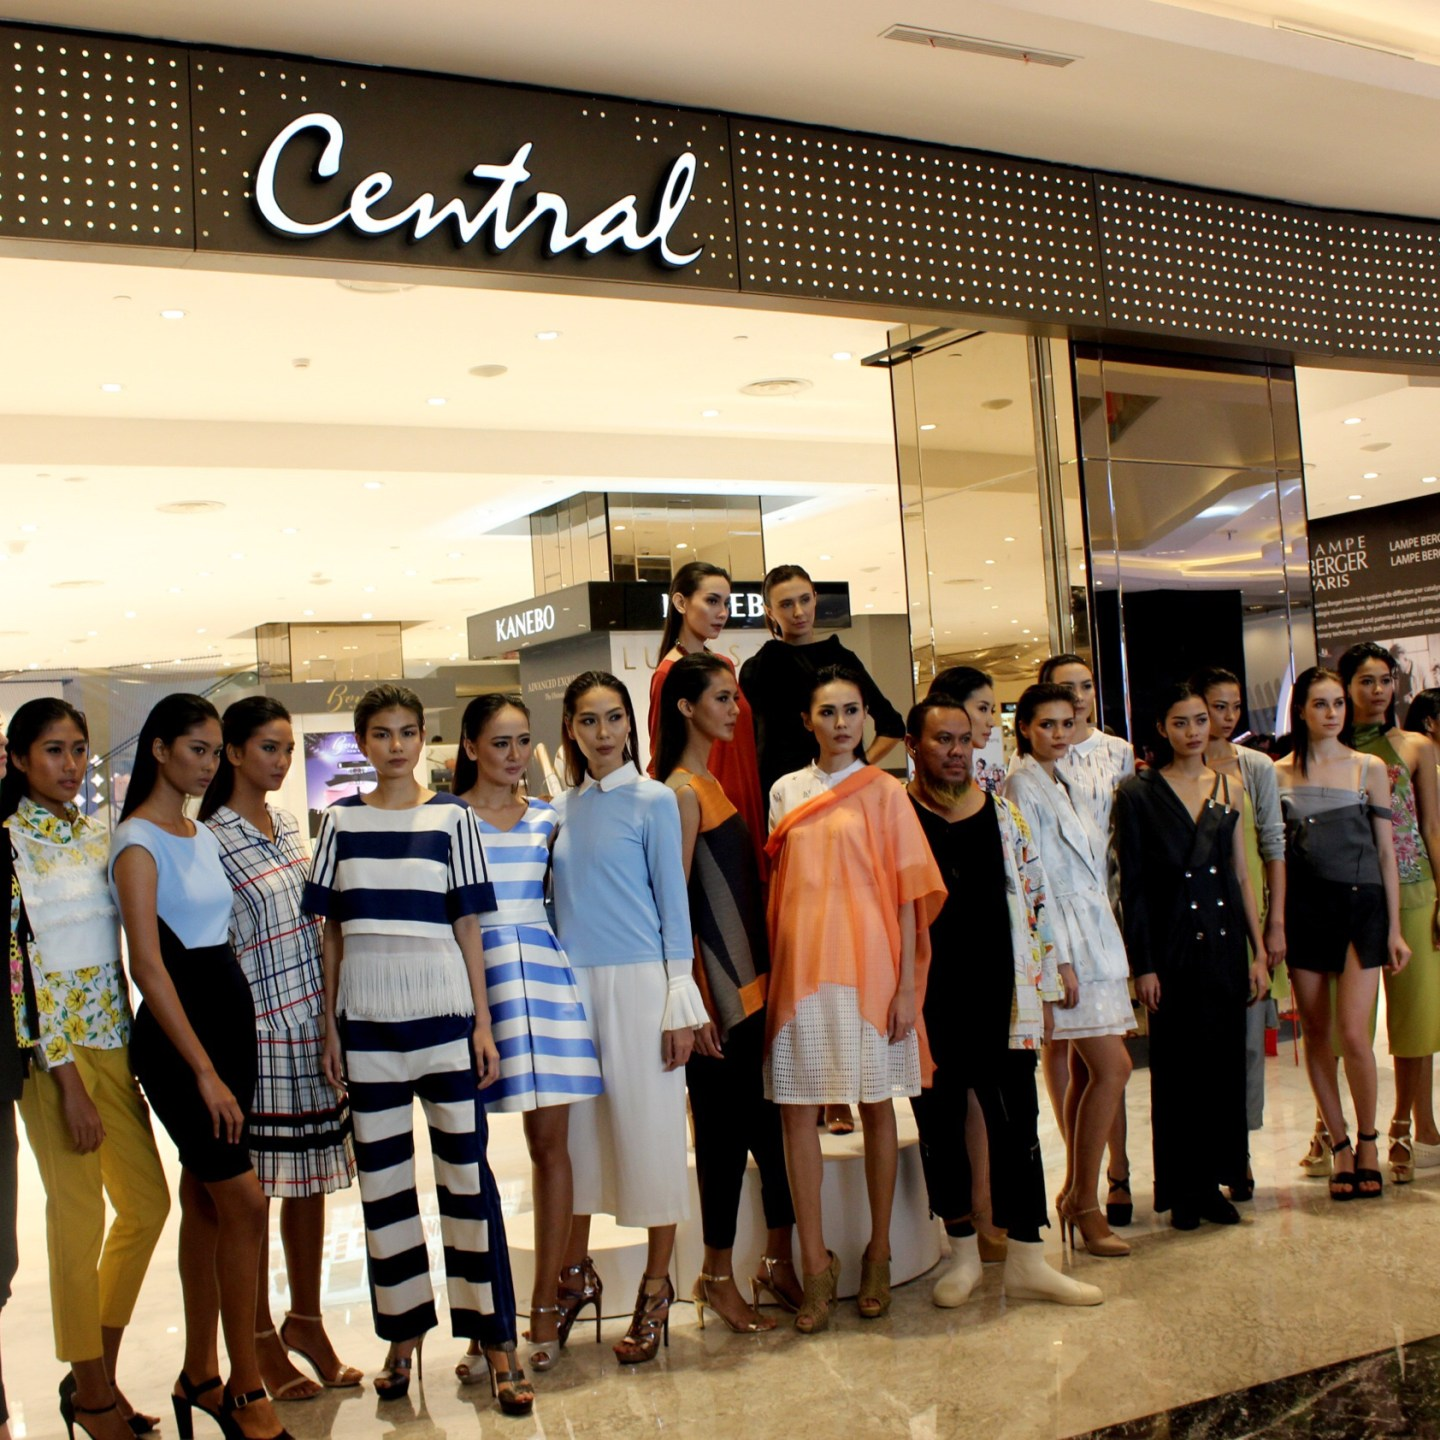 CENTRAL DEPARTMENT STORE AT NEO SOHO MALL